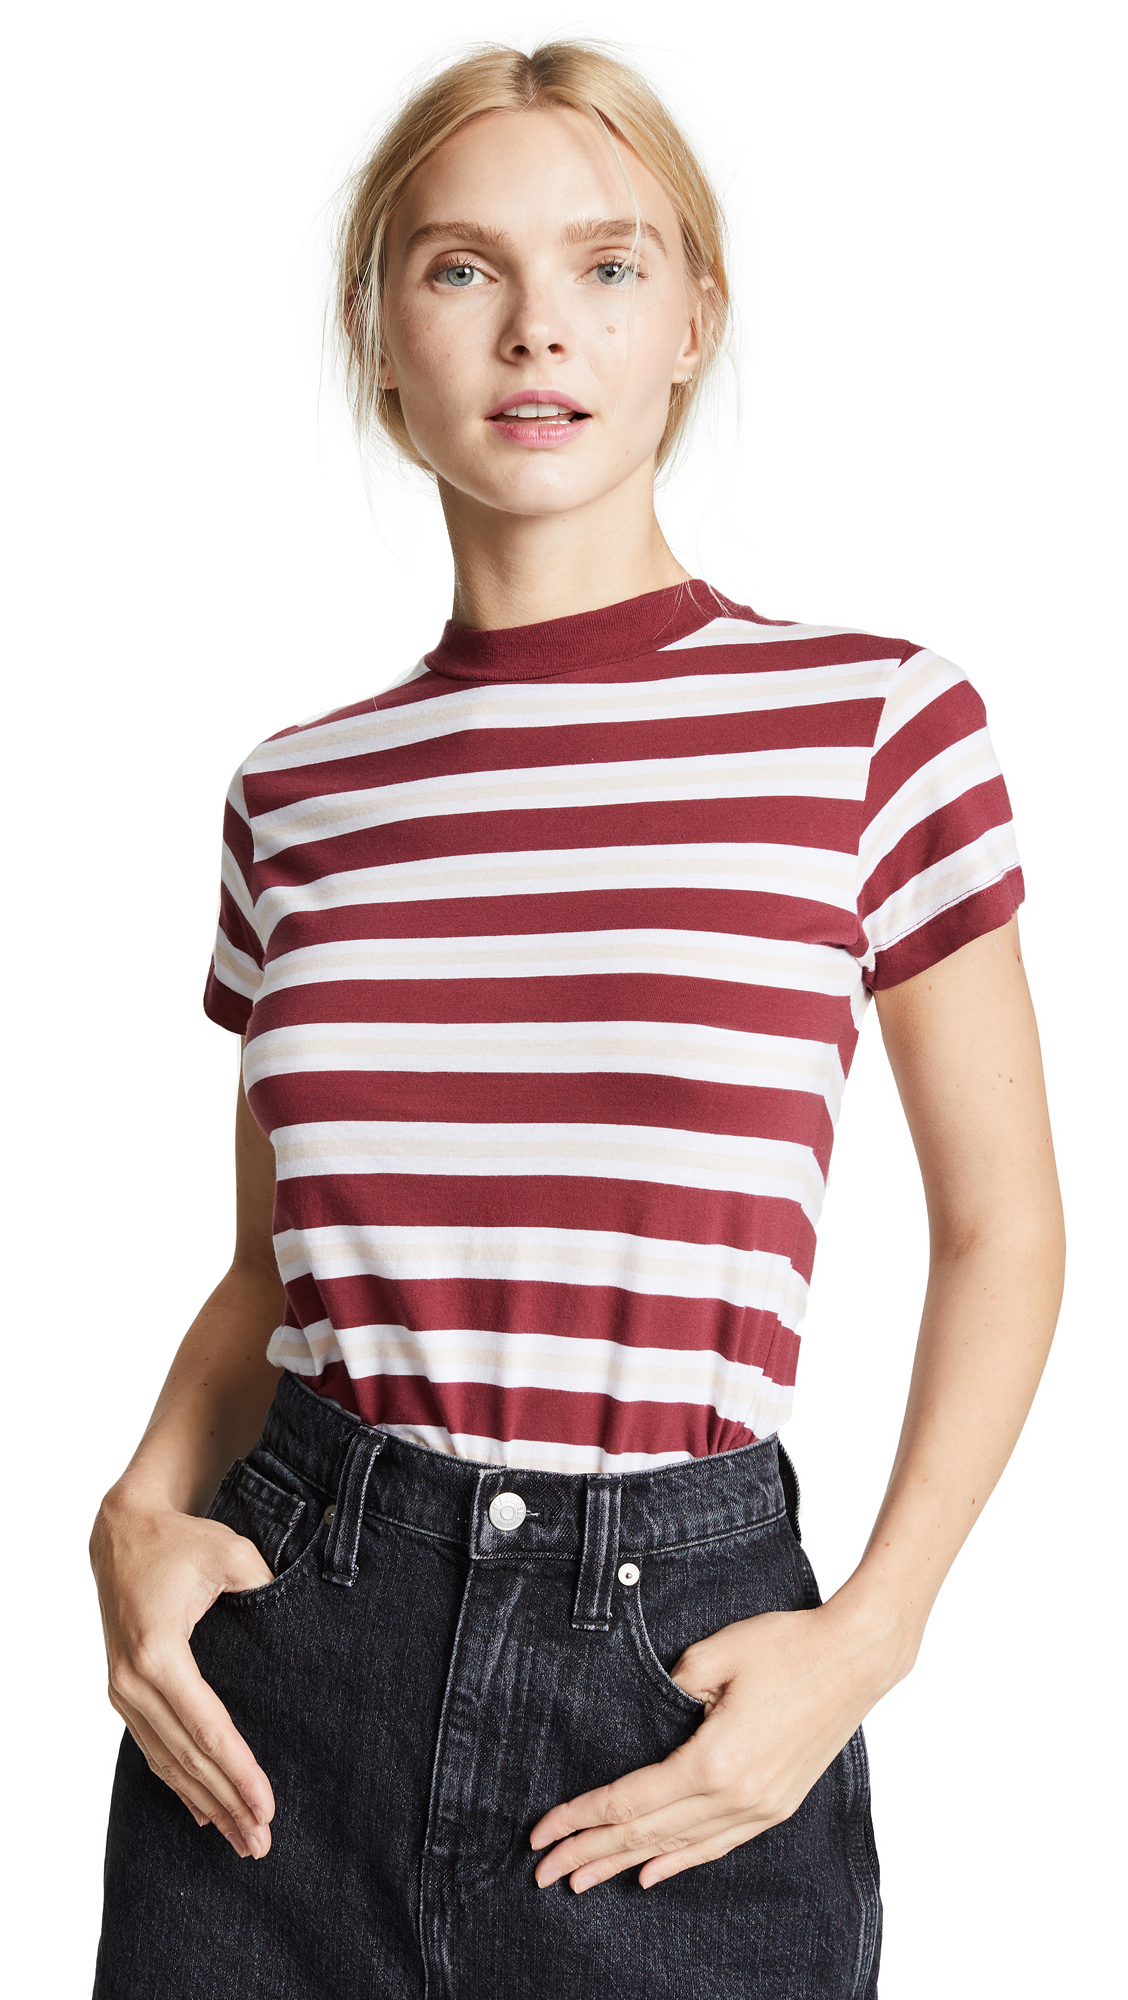 ROLLA'S Stripe Crew Tee in Currant